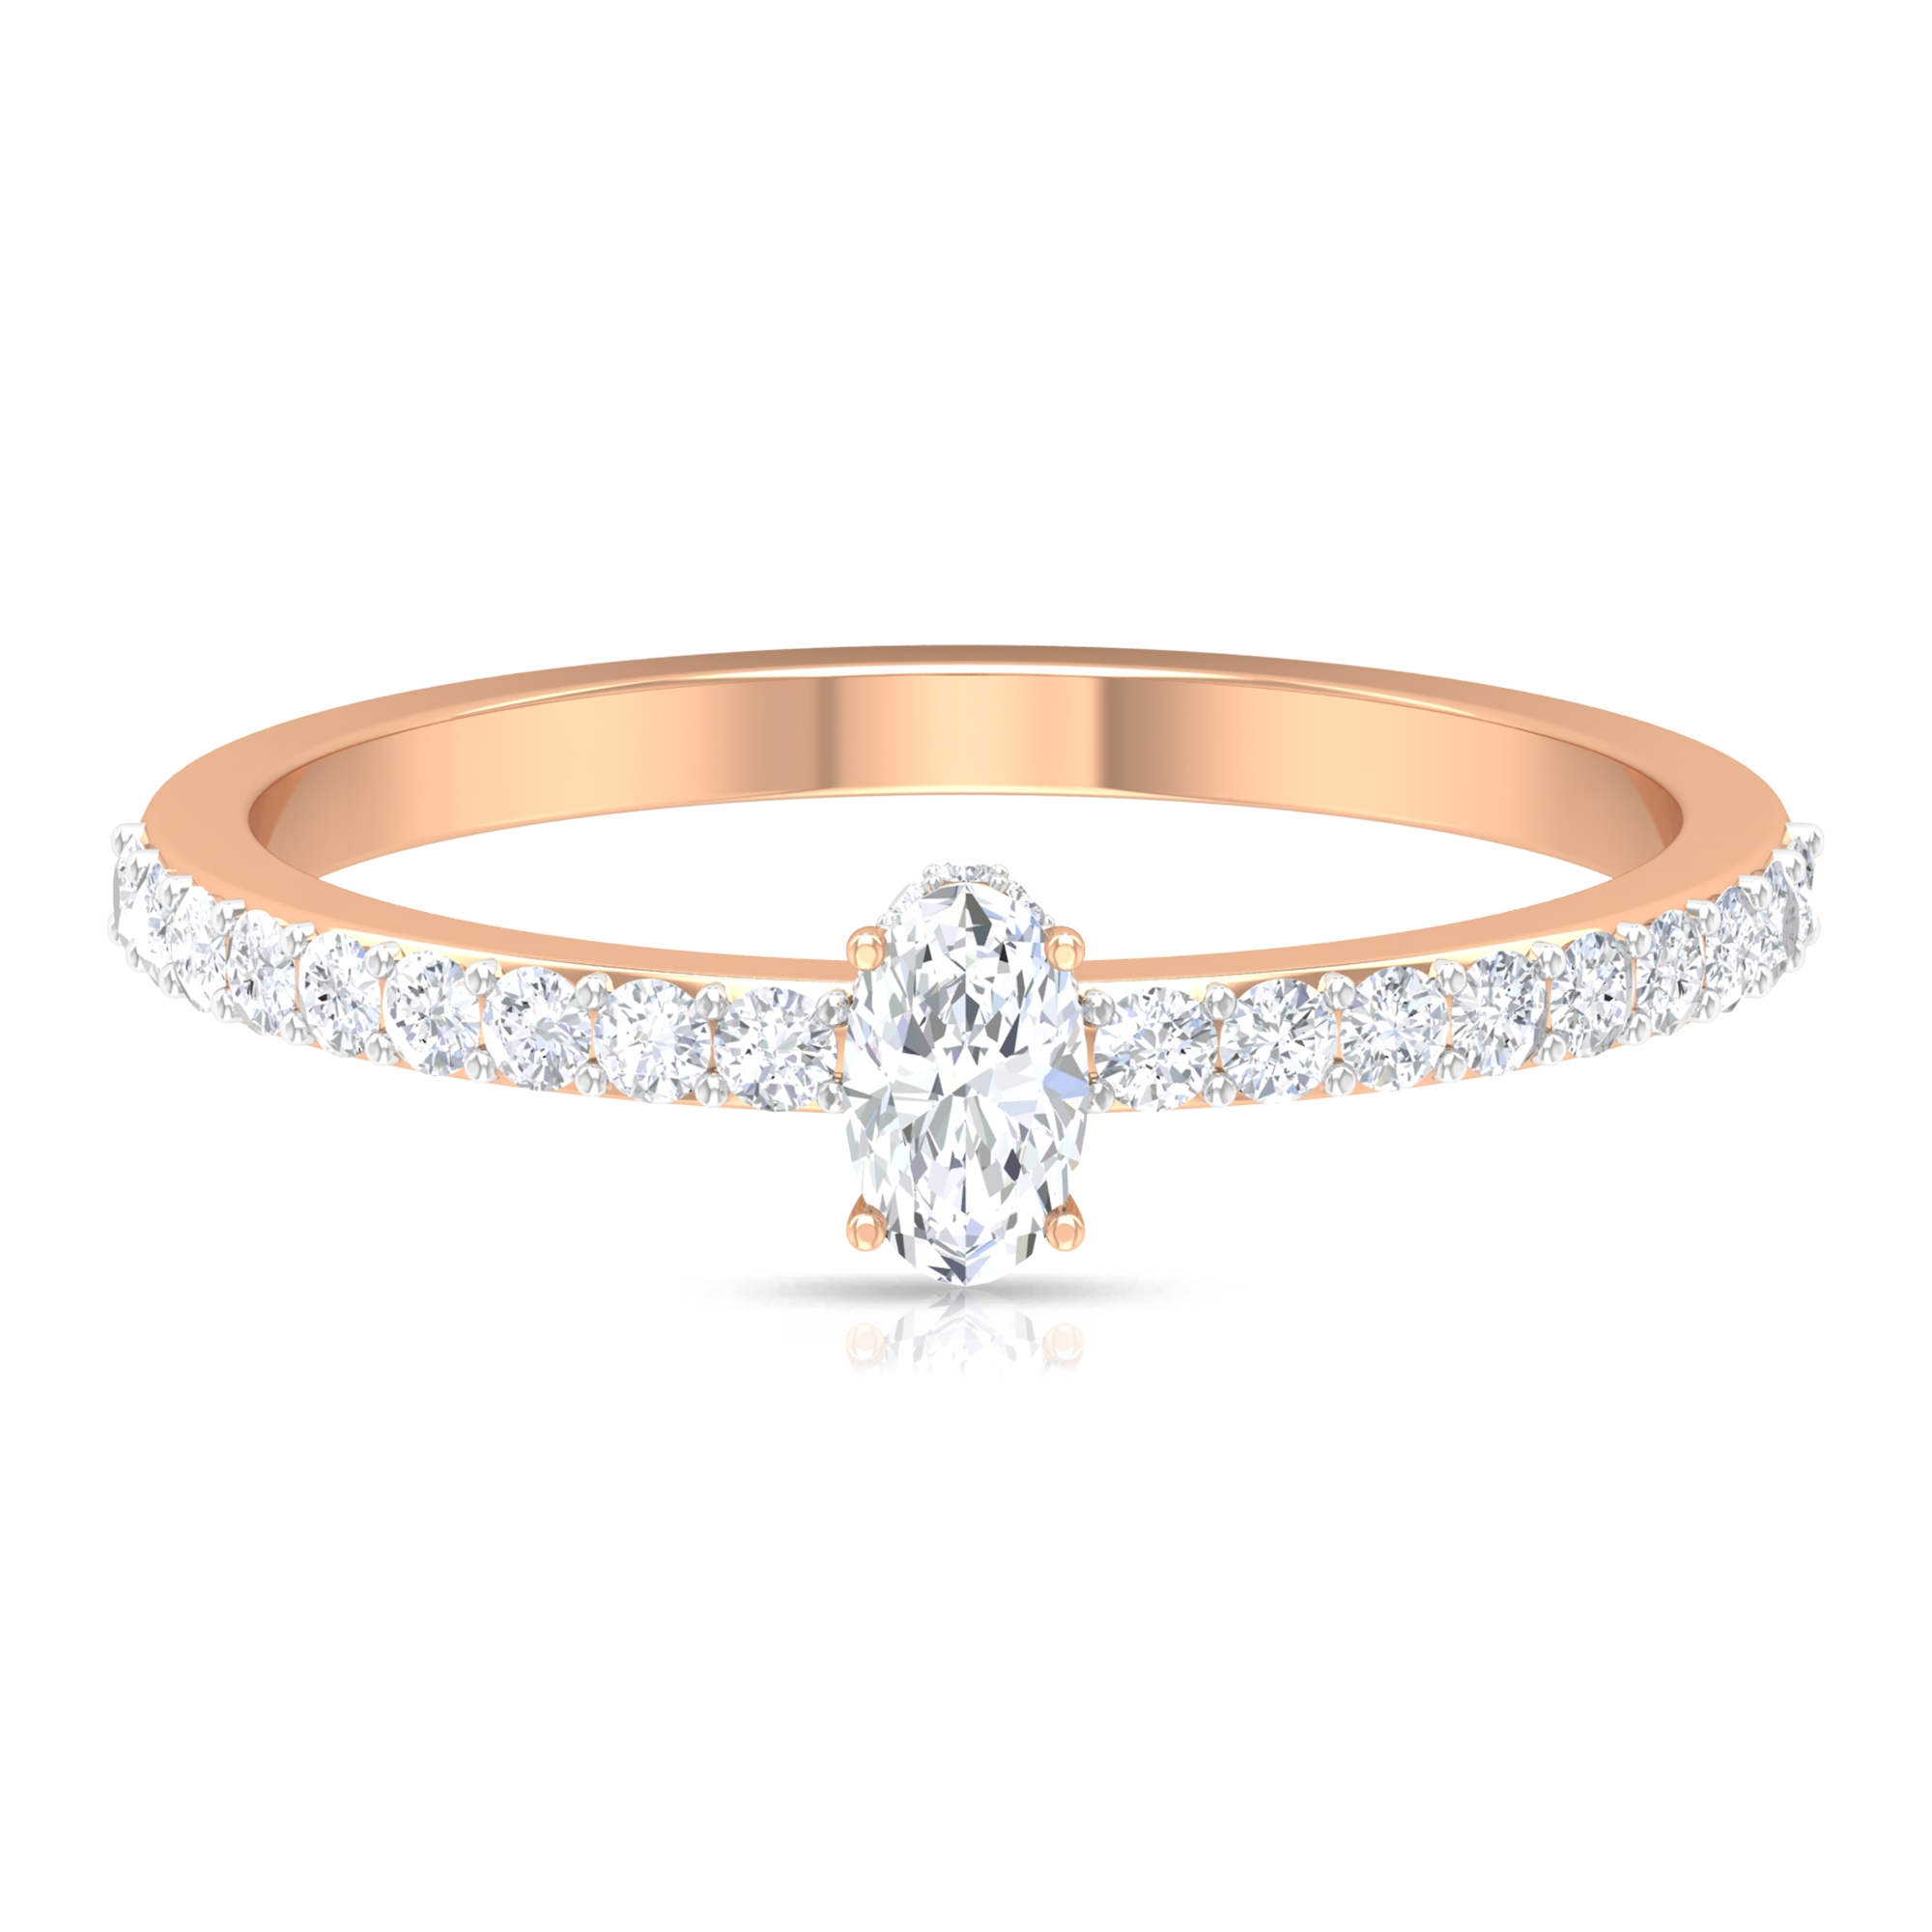 1/2 CT Oval Shape Solitaire Diamond Ring with Hidden Halo and Surface Prong Set